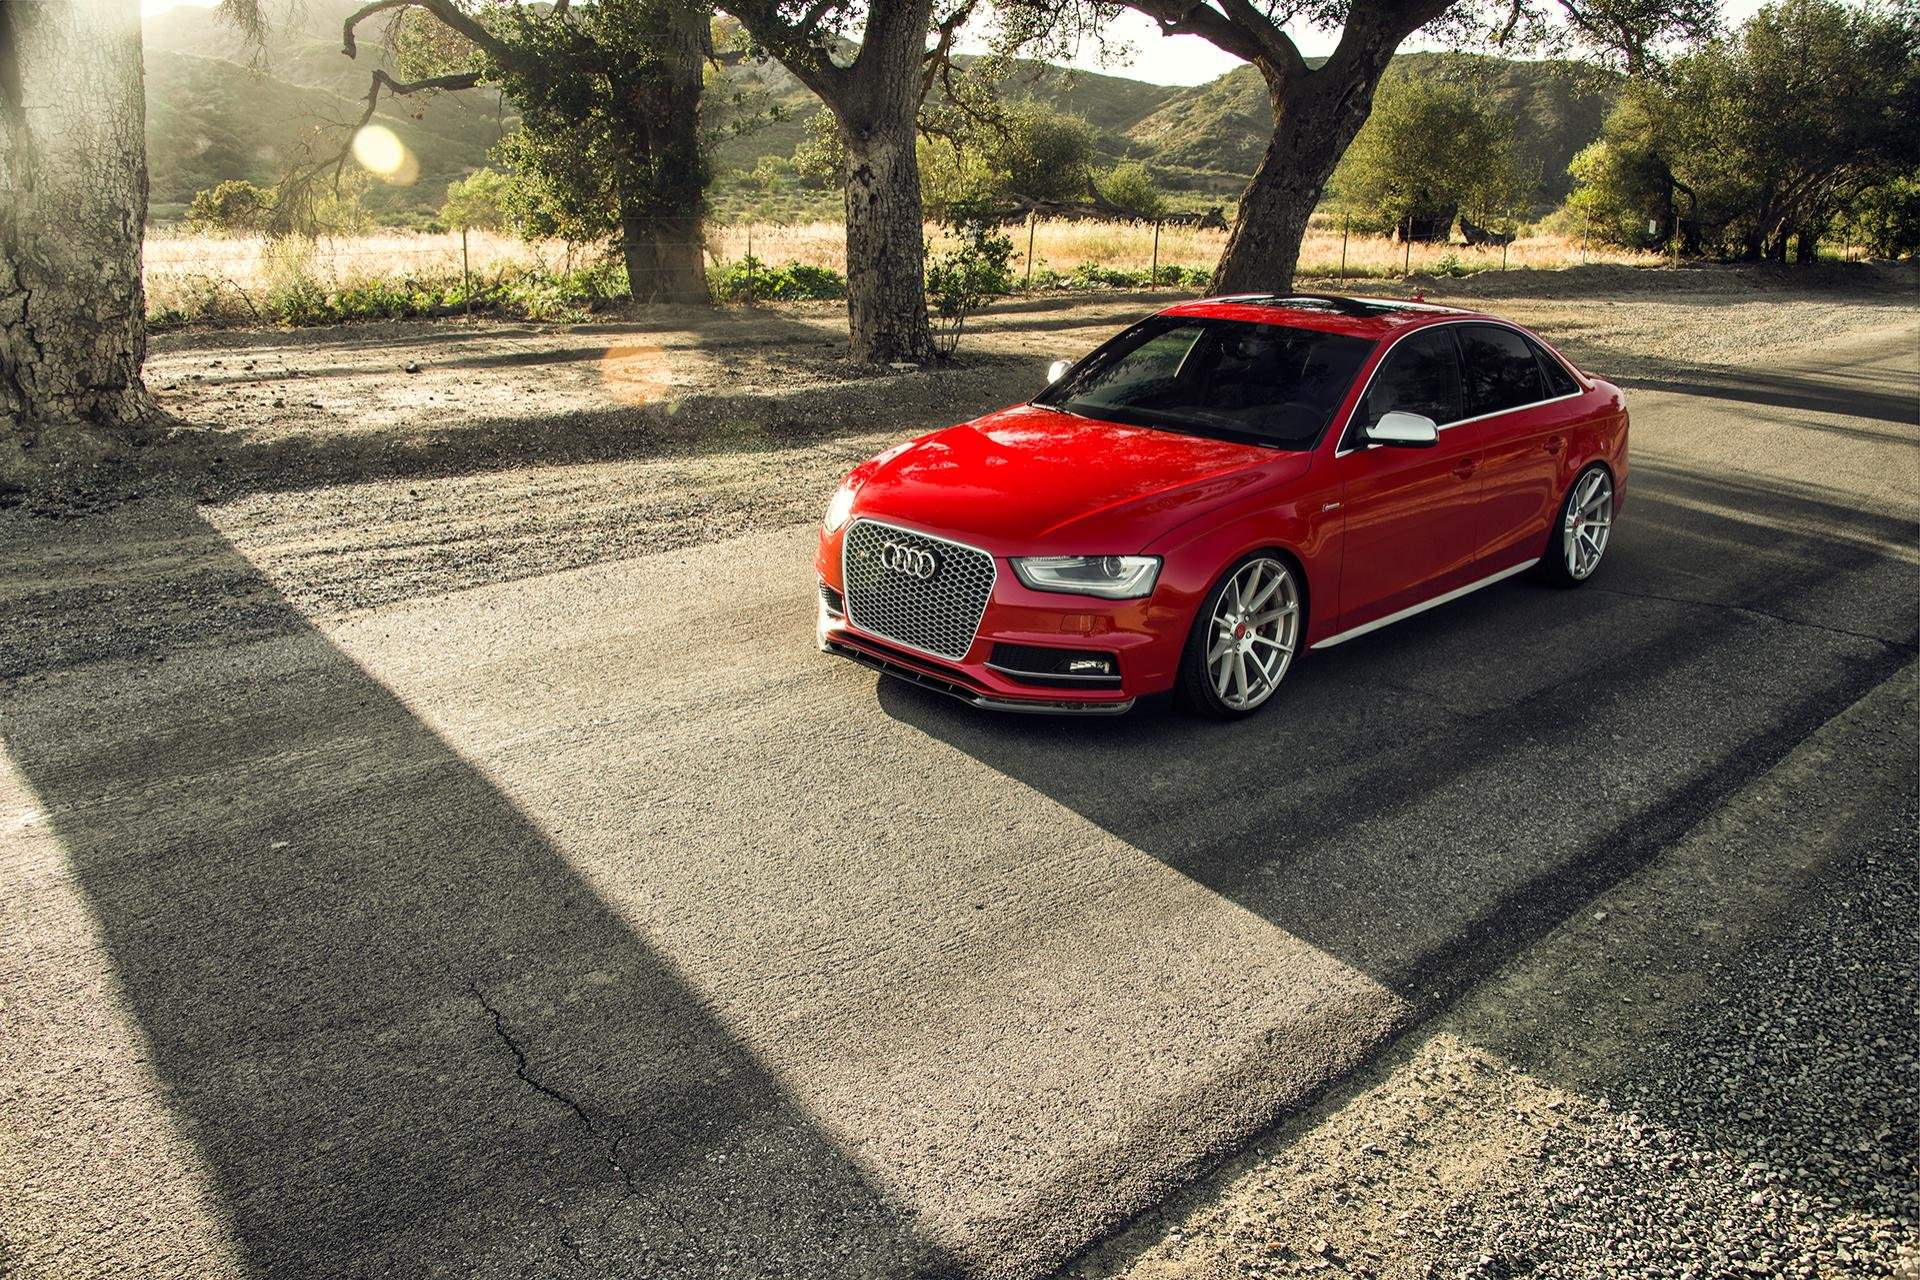 Audi S4 wallpapers HD for desktop backgrounds